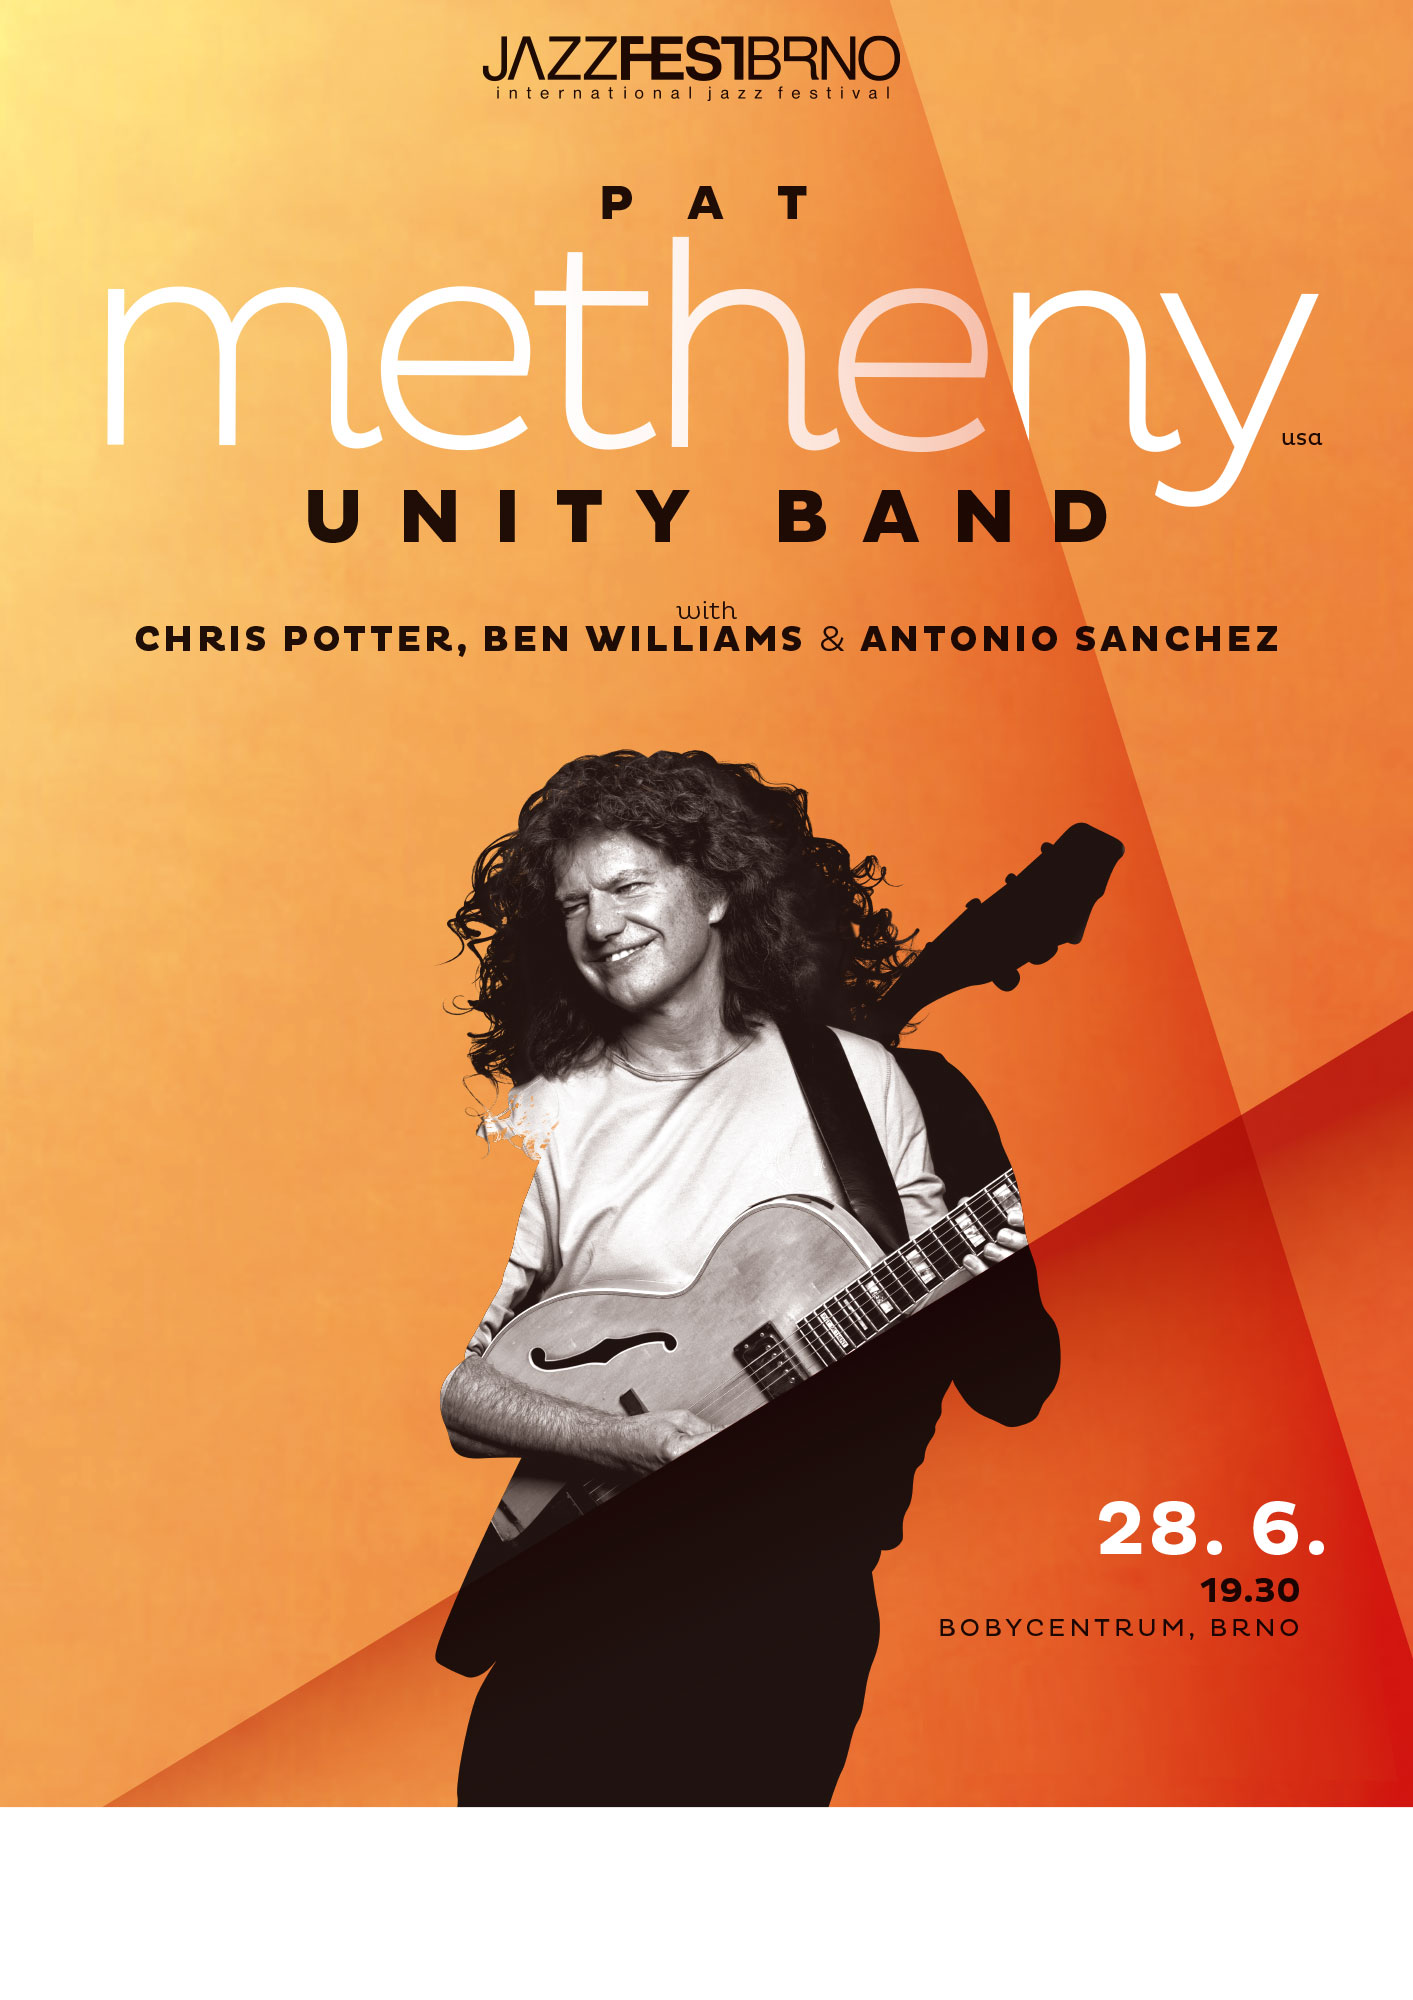 JazzFestBrno 2012 – Pat Metheny